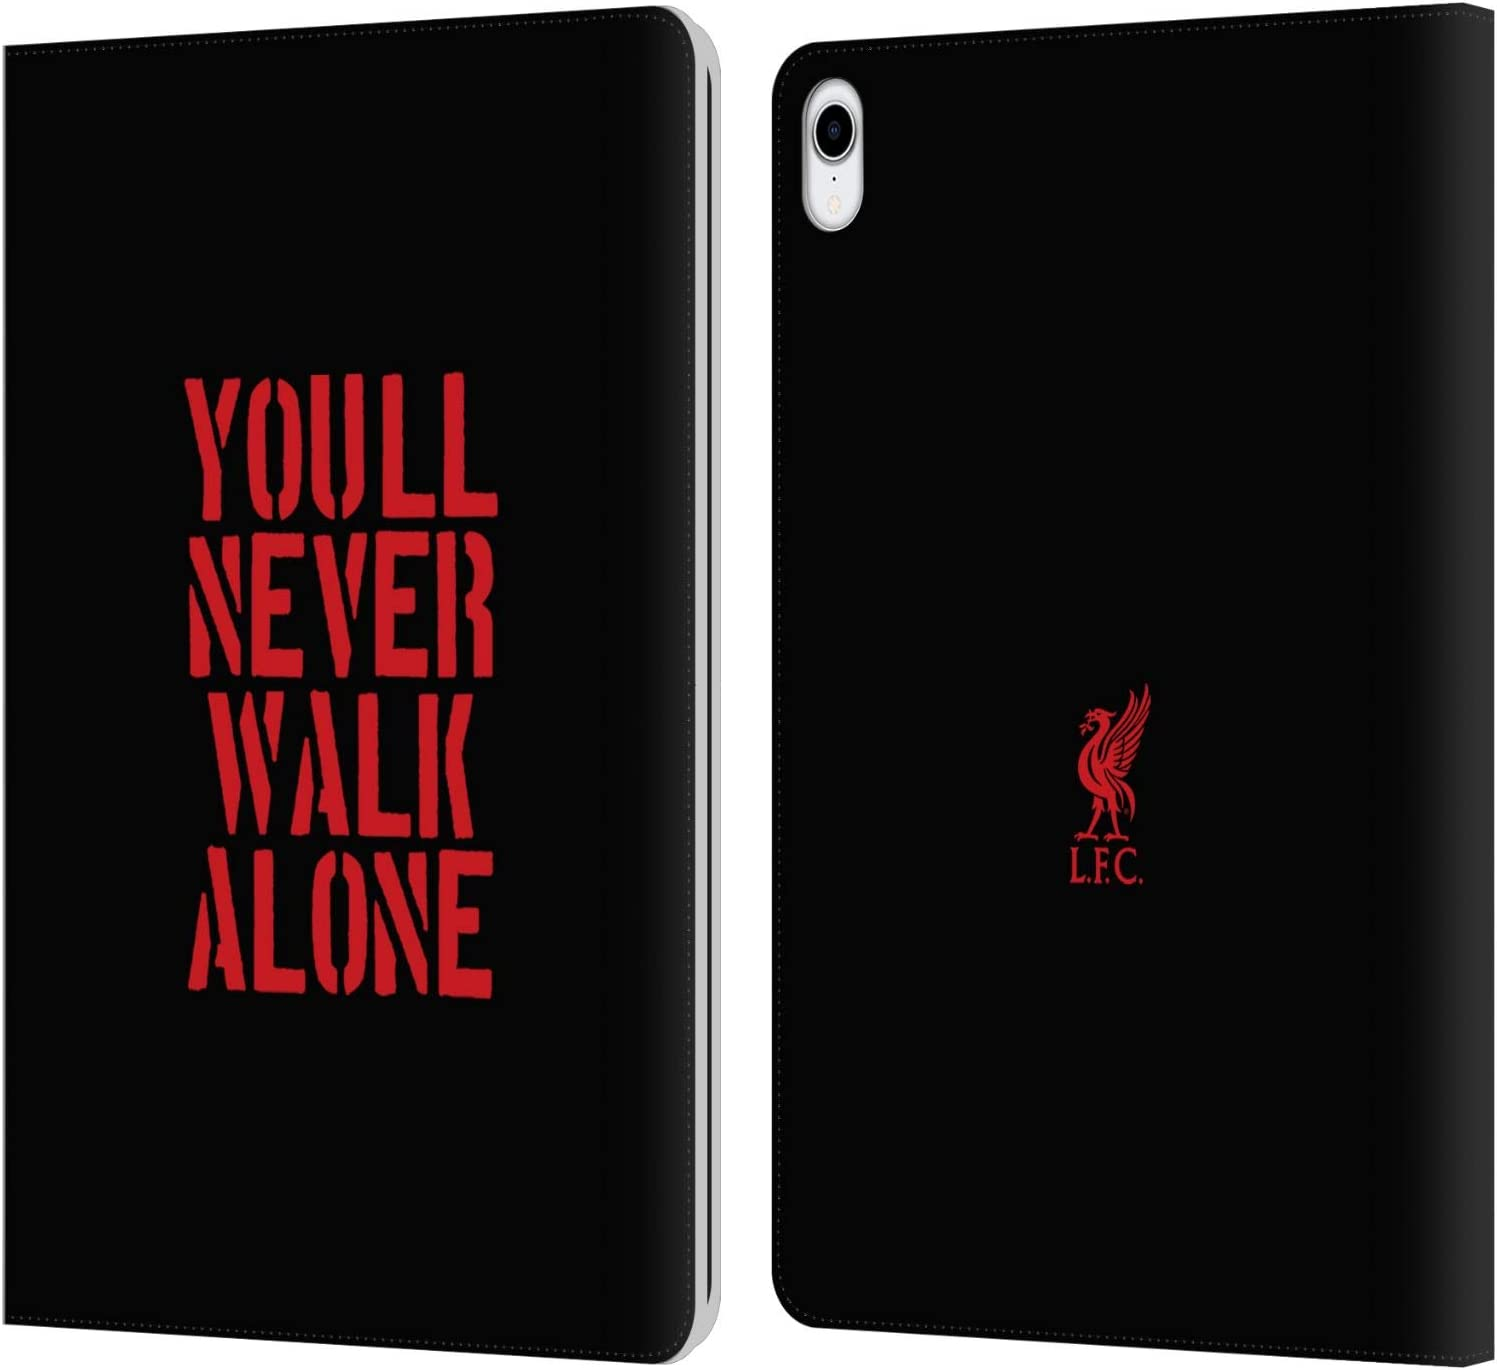 Head Case Designs Officially Licensed Liverpool Football Club Stencil Black Liver Bird YNWA PU Leather Book Wallet Case Cover Compatible with Apple iPad Pro 11 (2018)